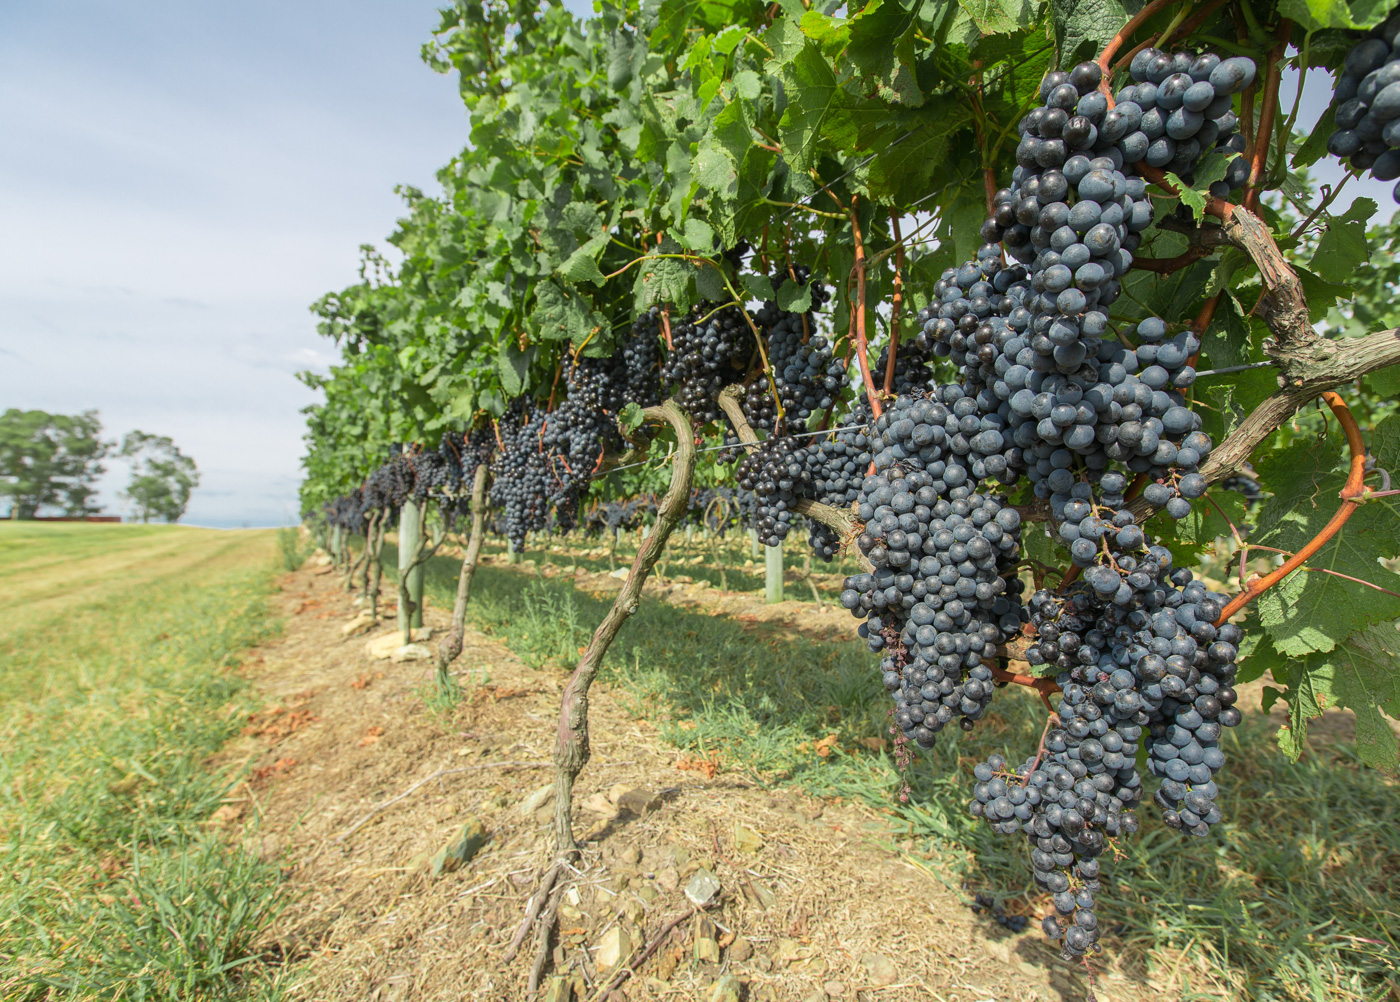 URU_Vineyard_Grapes_shutterstock_129423800_Free